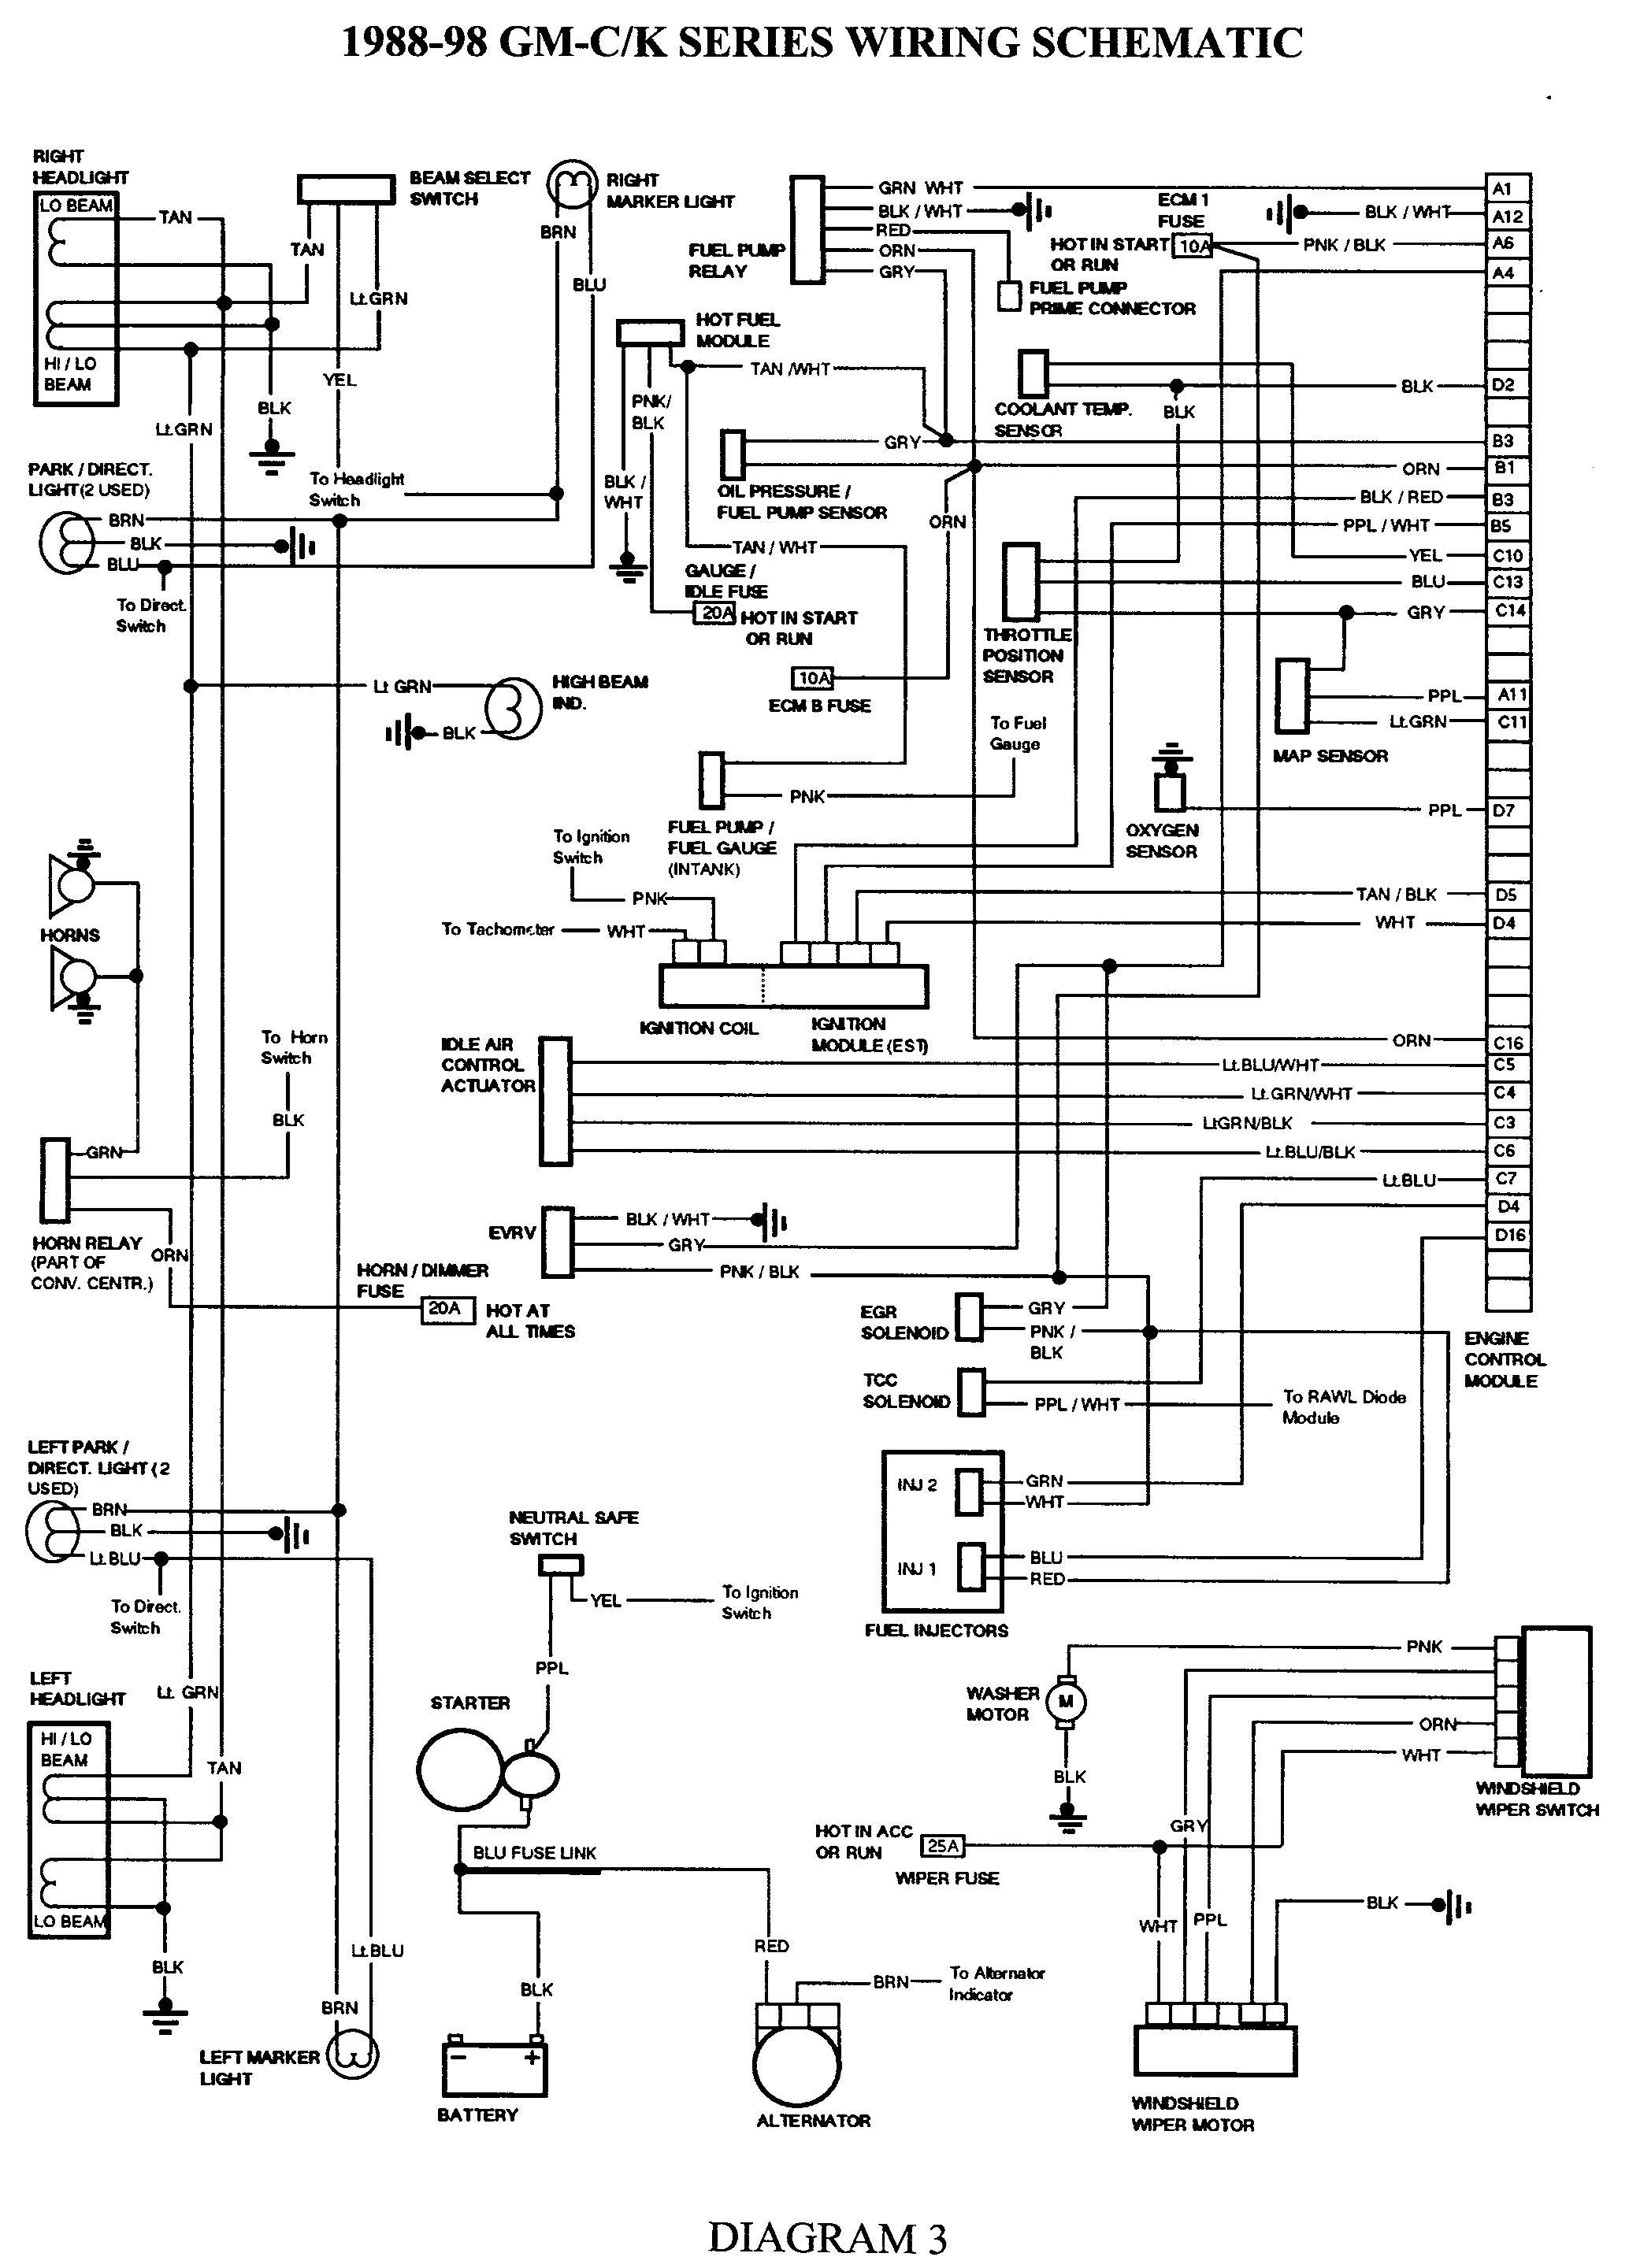 Truck Engine Diagram 1998 Gmc Truck Wiring Diagram Electric Harness Hyundai  sonata Of Truck Engine Diagram